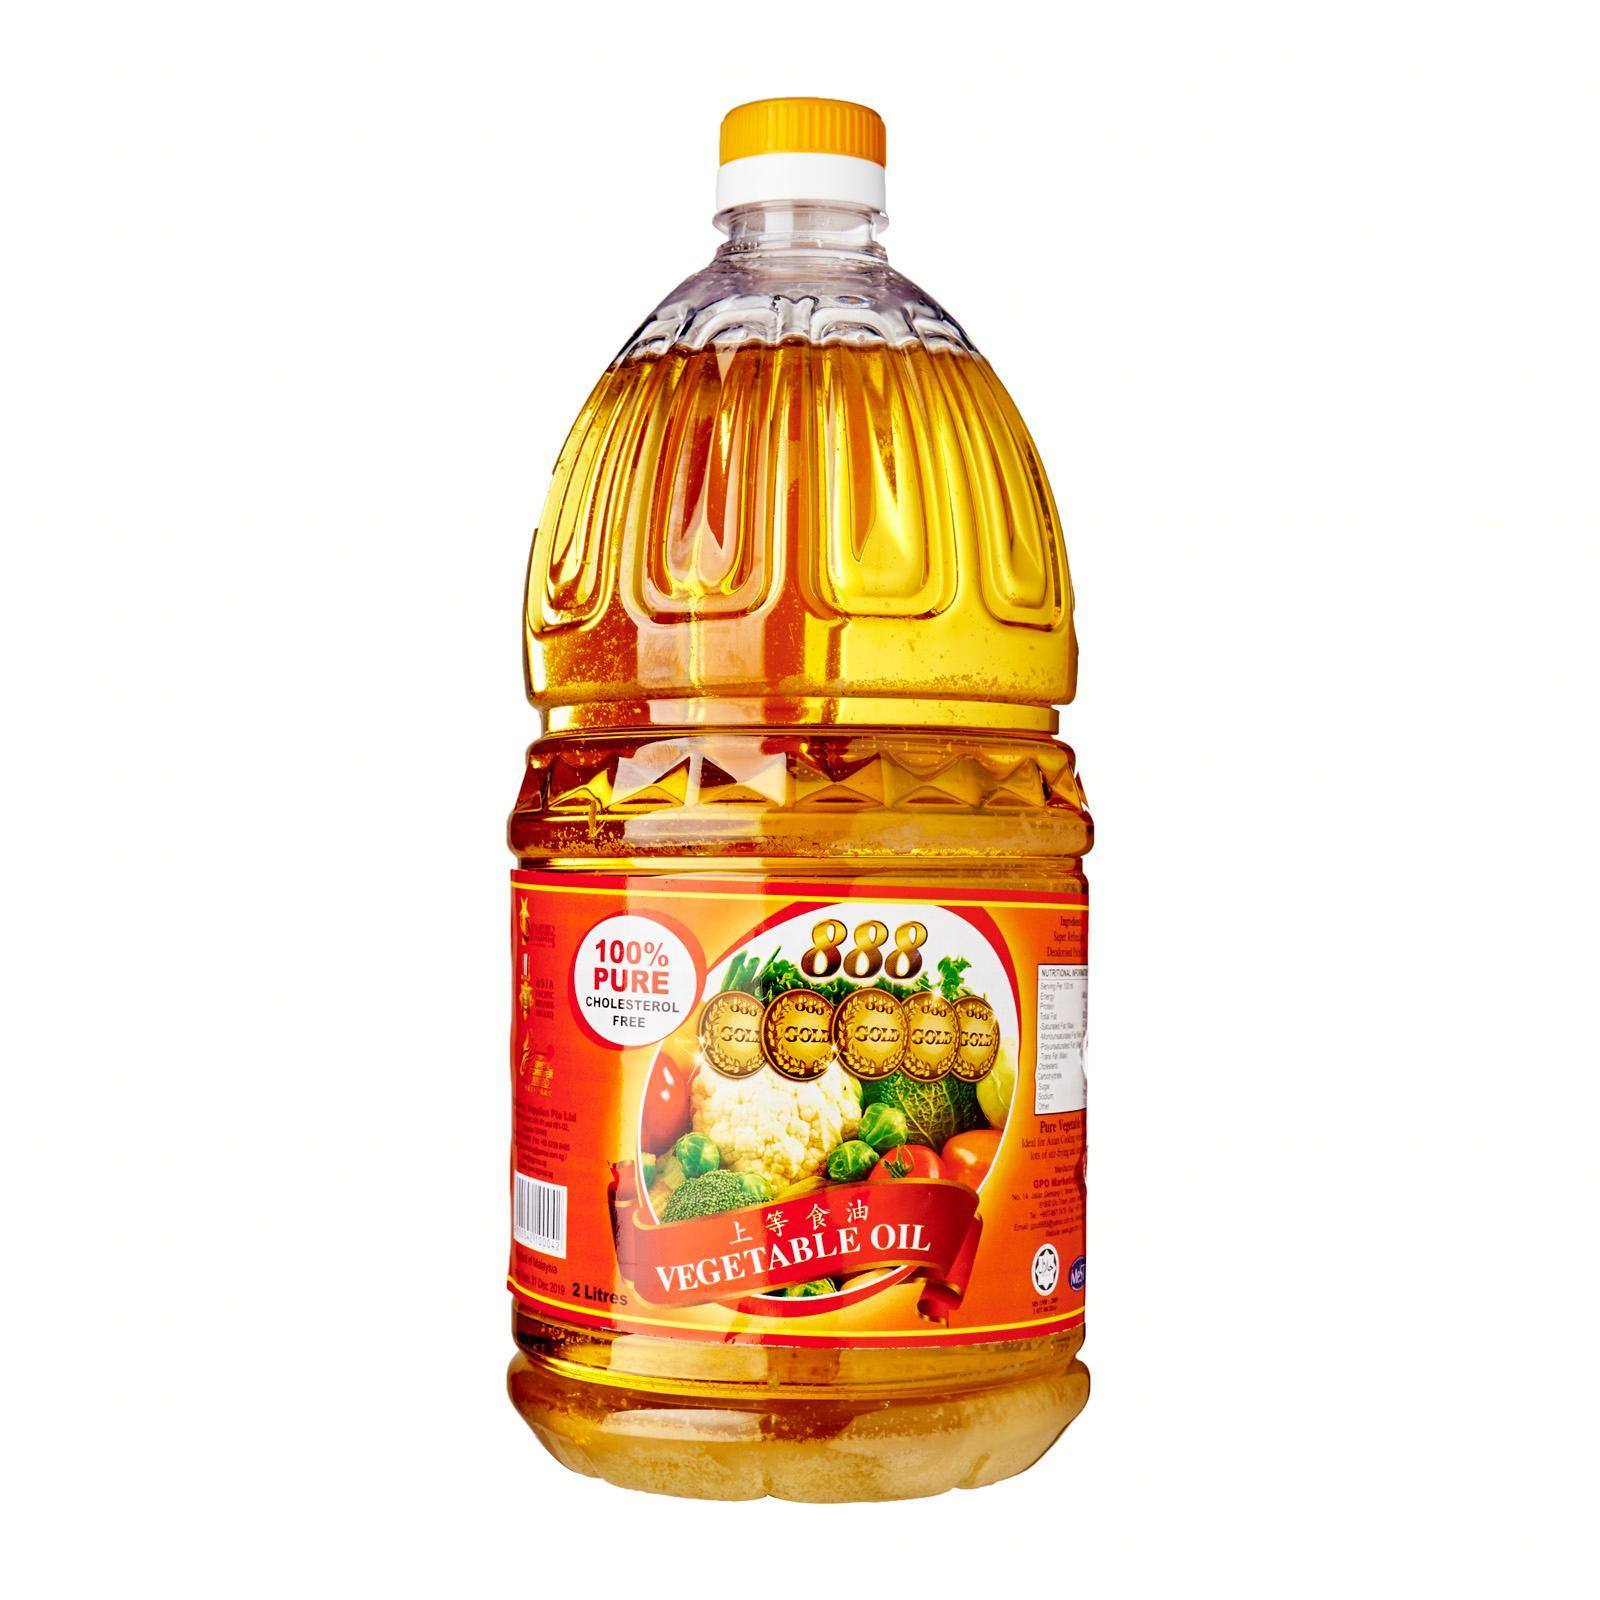 888 Vegetable Oil (2l) By Redmart.